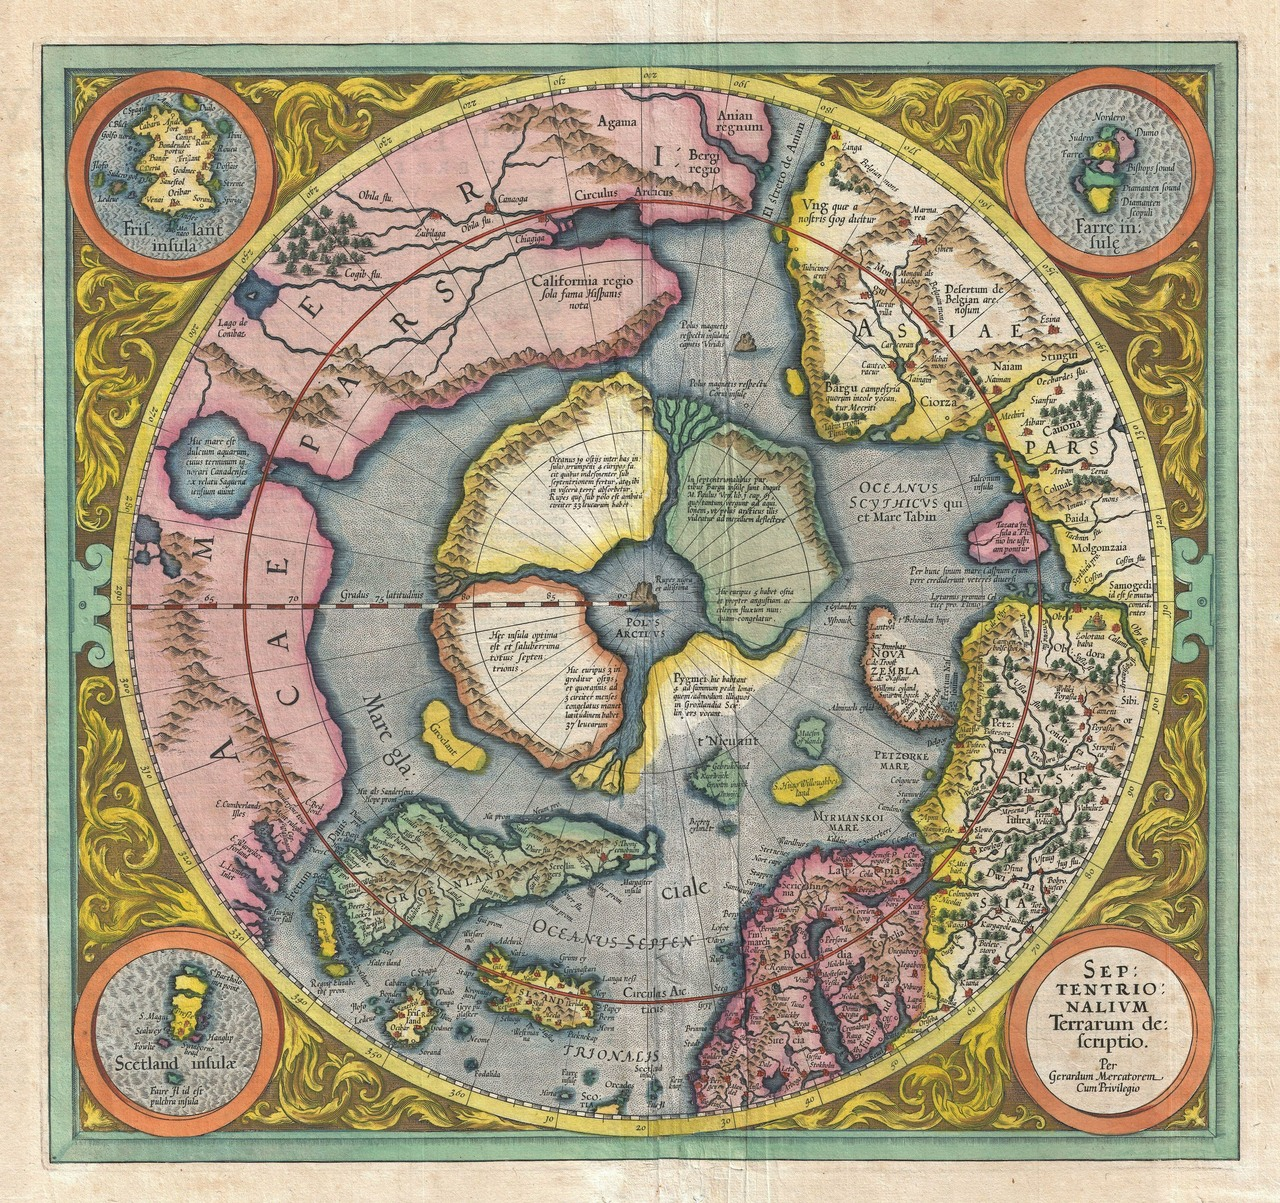 The second draft of the Septentrionalium Terrarum, released in 1606.